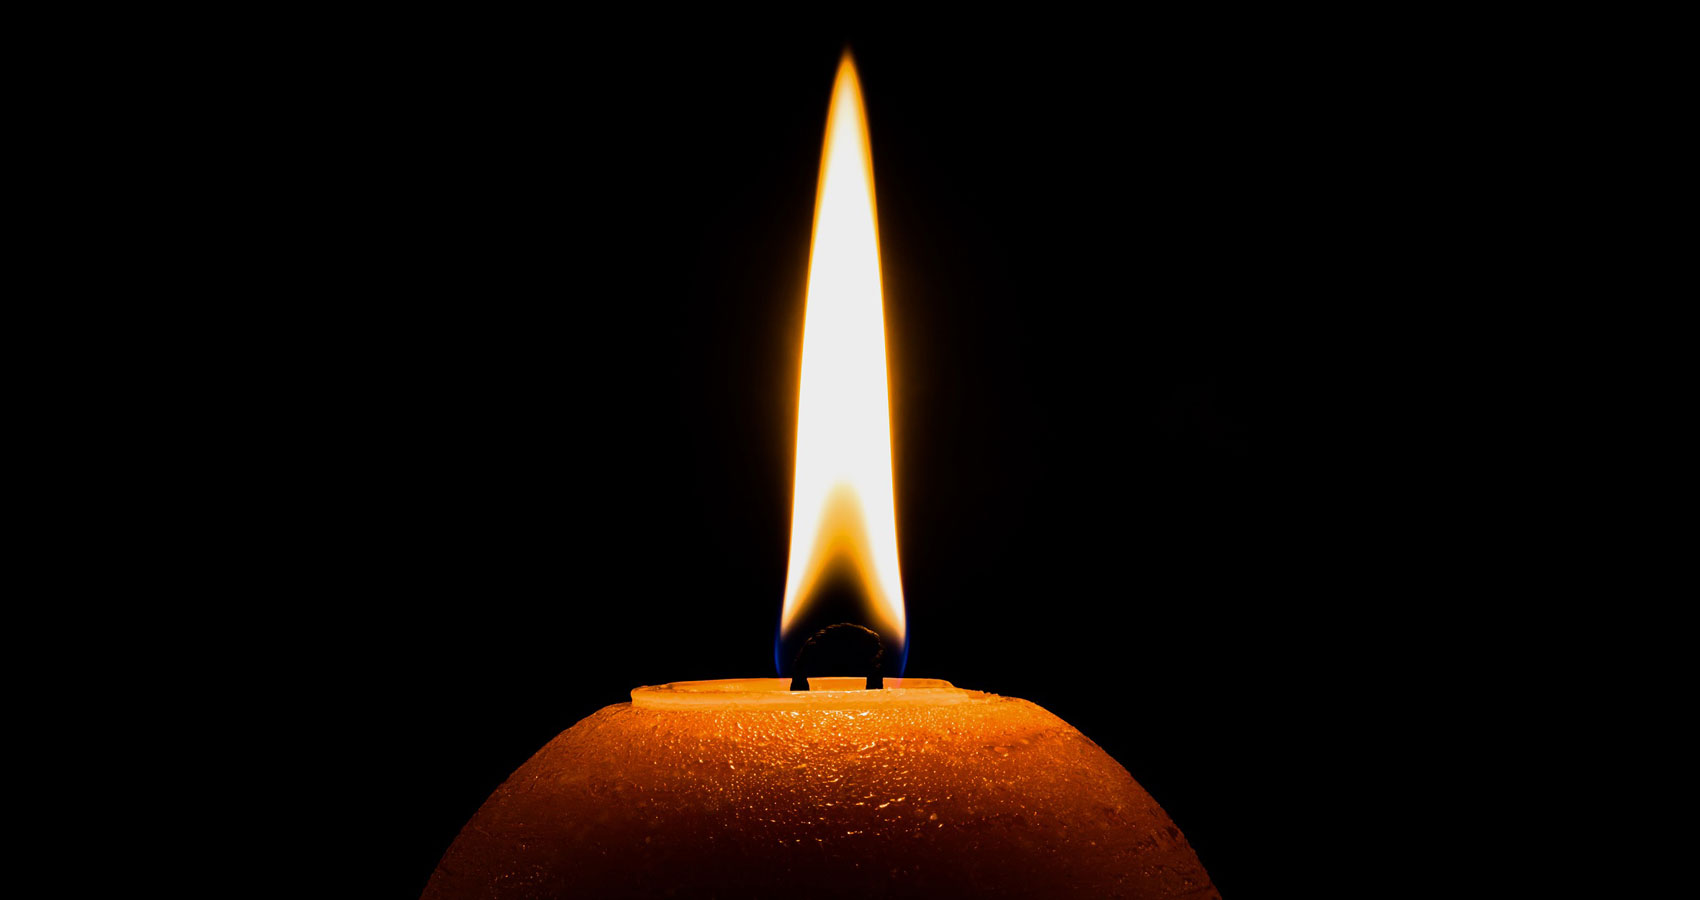 Candlelight, a poem written by Barbara Deraoui at Spillwords.com